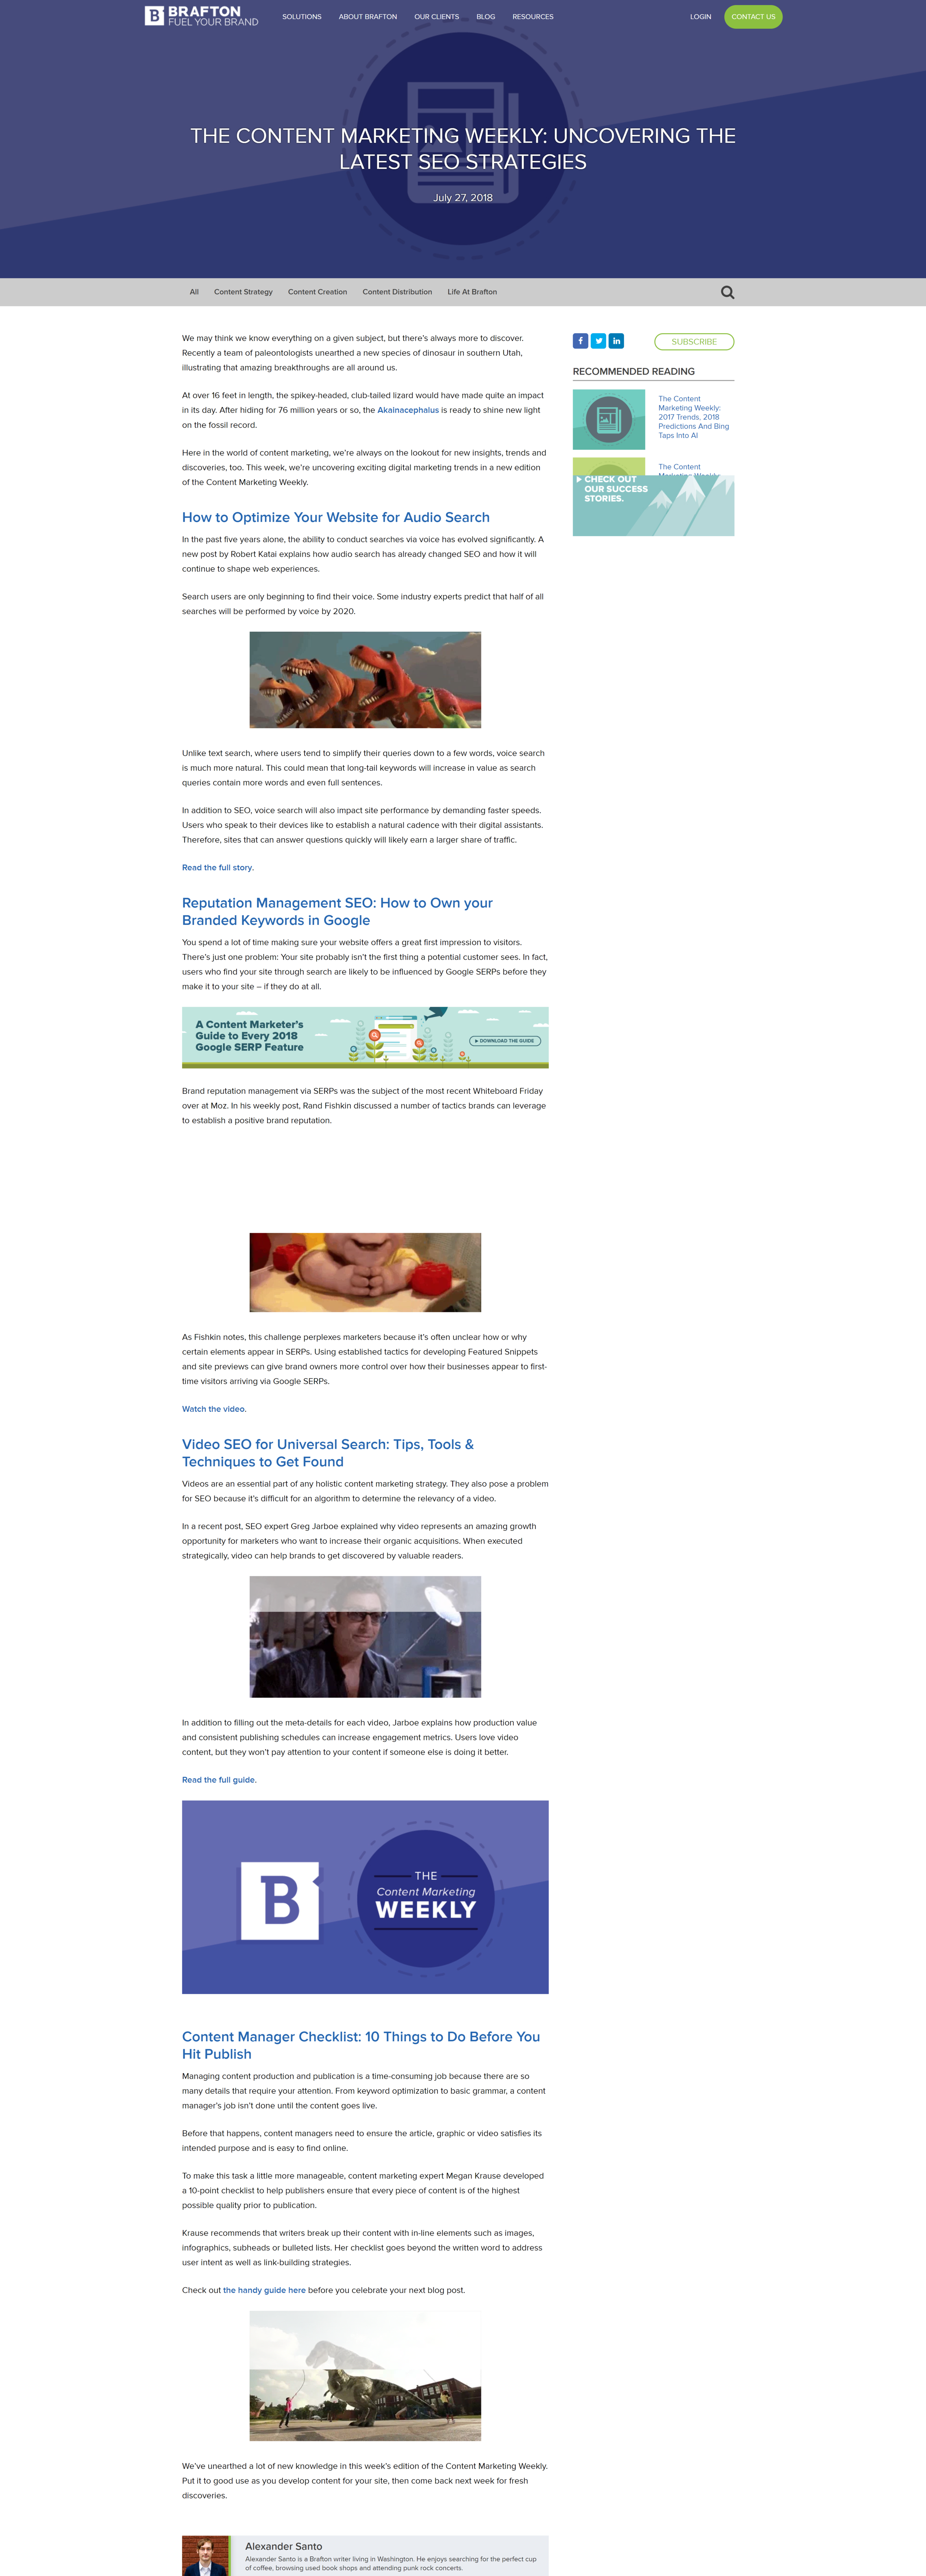 screencapture-brafton-blog-content-marketing-weekly-the-content-marketing-weekly-uncovering-the-latest-seo-strategies-2018-07-27-11_23_44.png